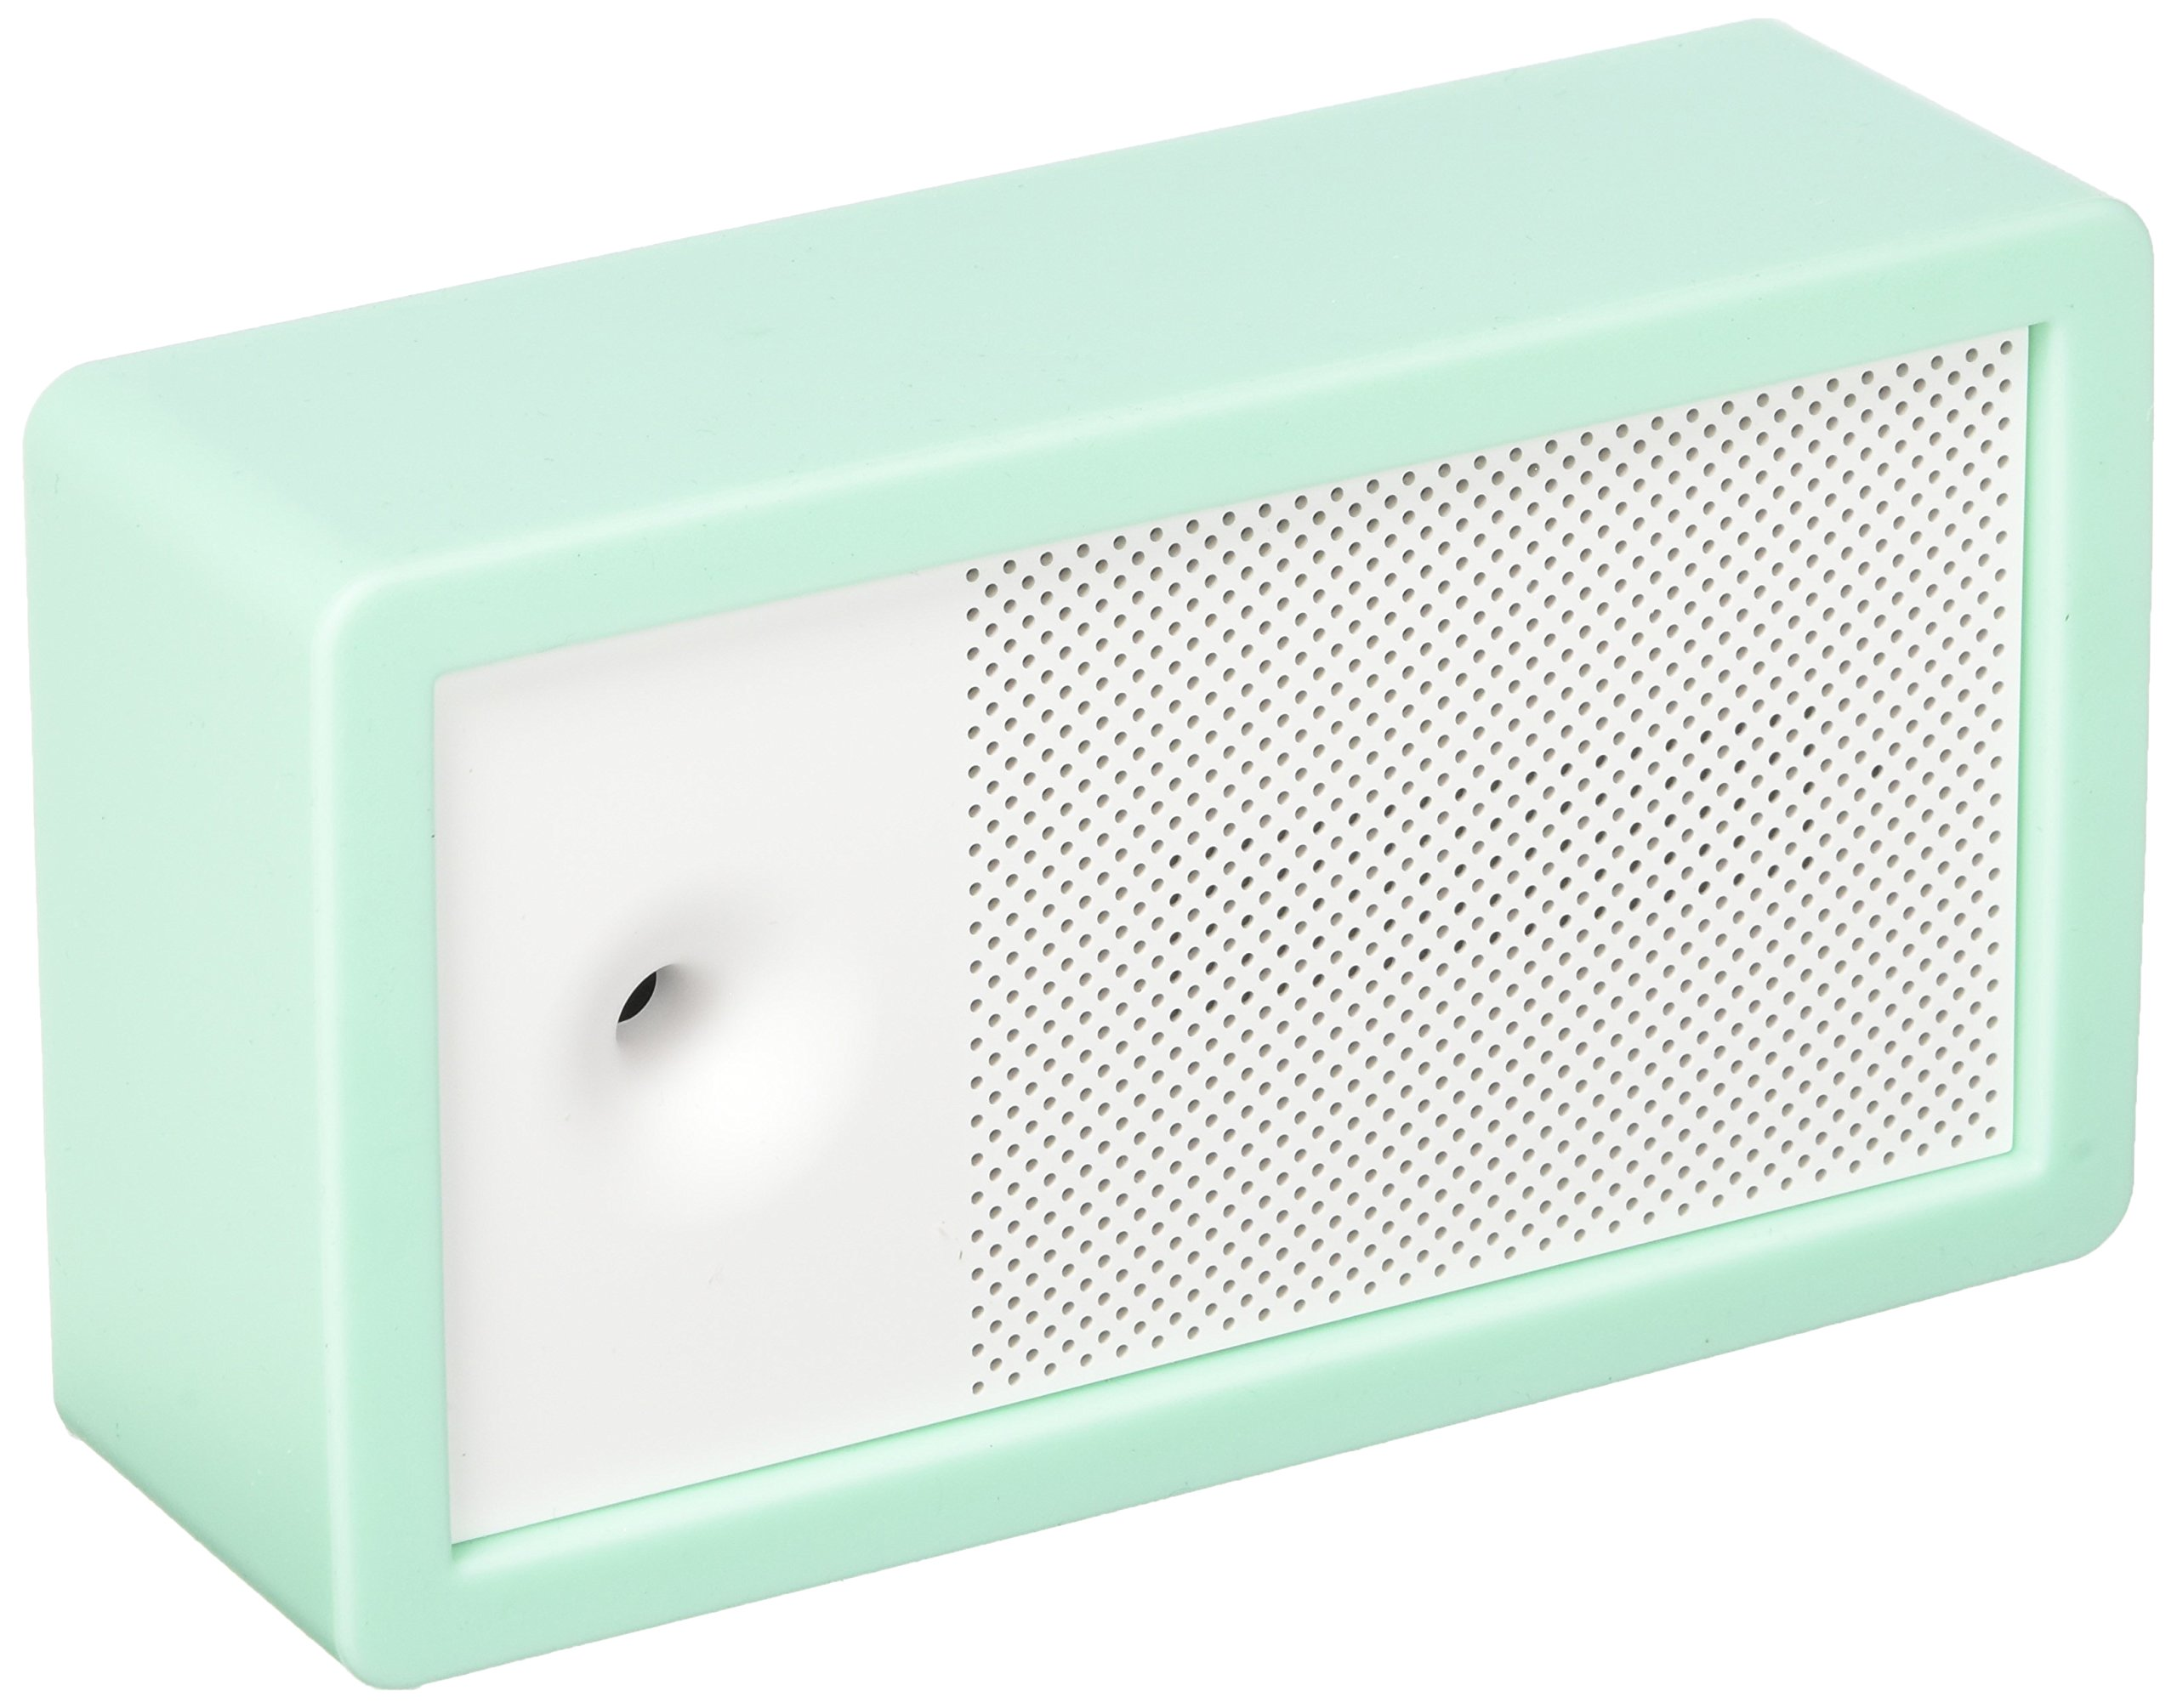 Awair Baby Edition: Know What's in the Air You Breathe - Air Quality Monitor - Ocean